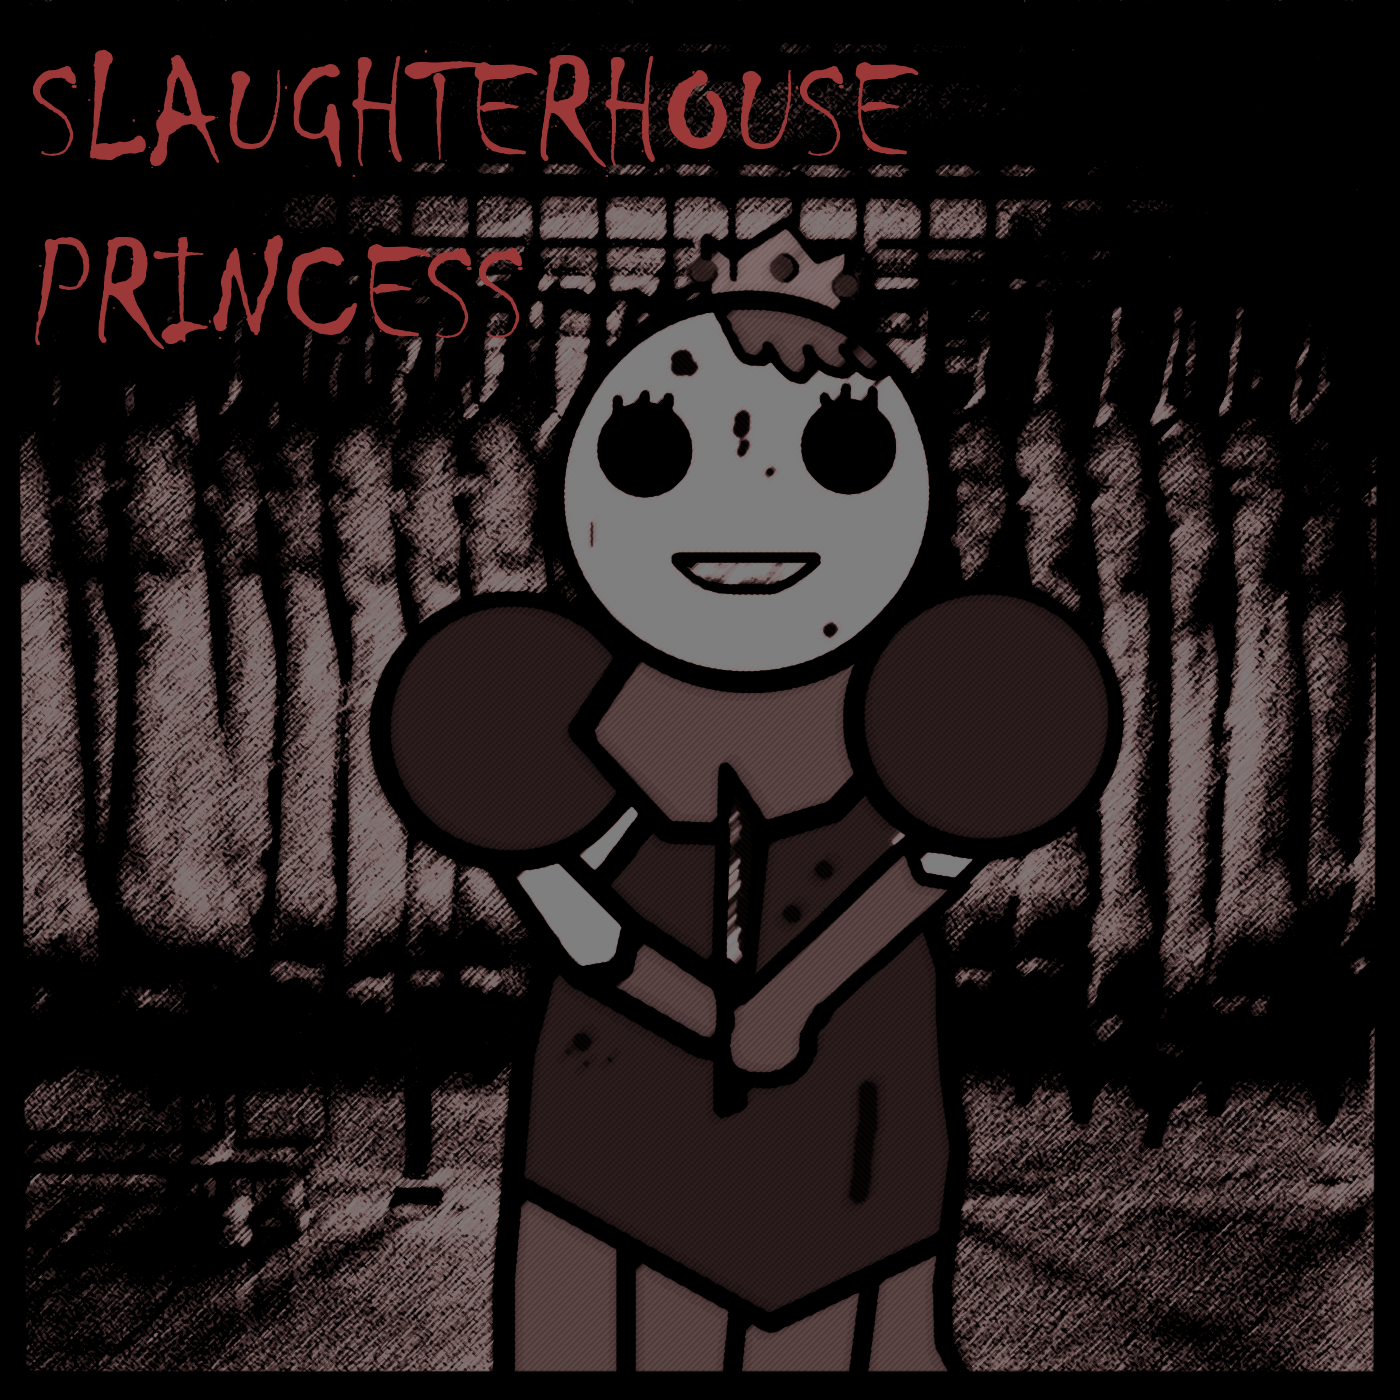 Slaughterhouse Princess